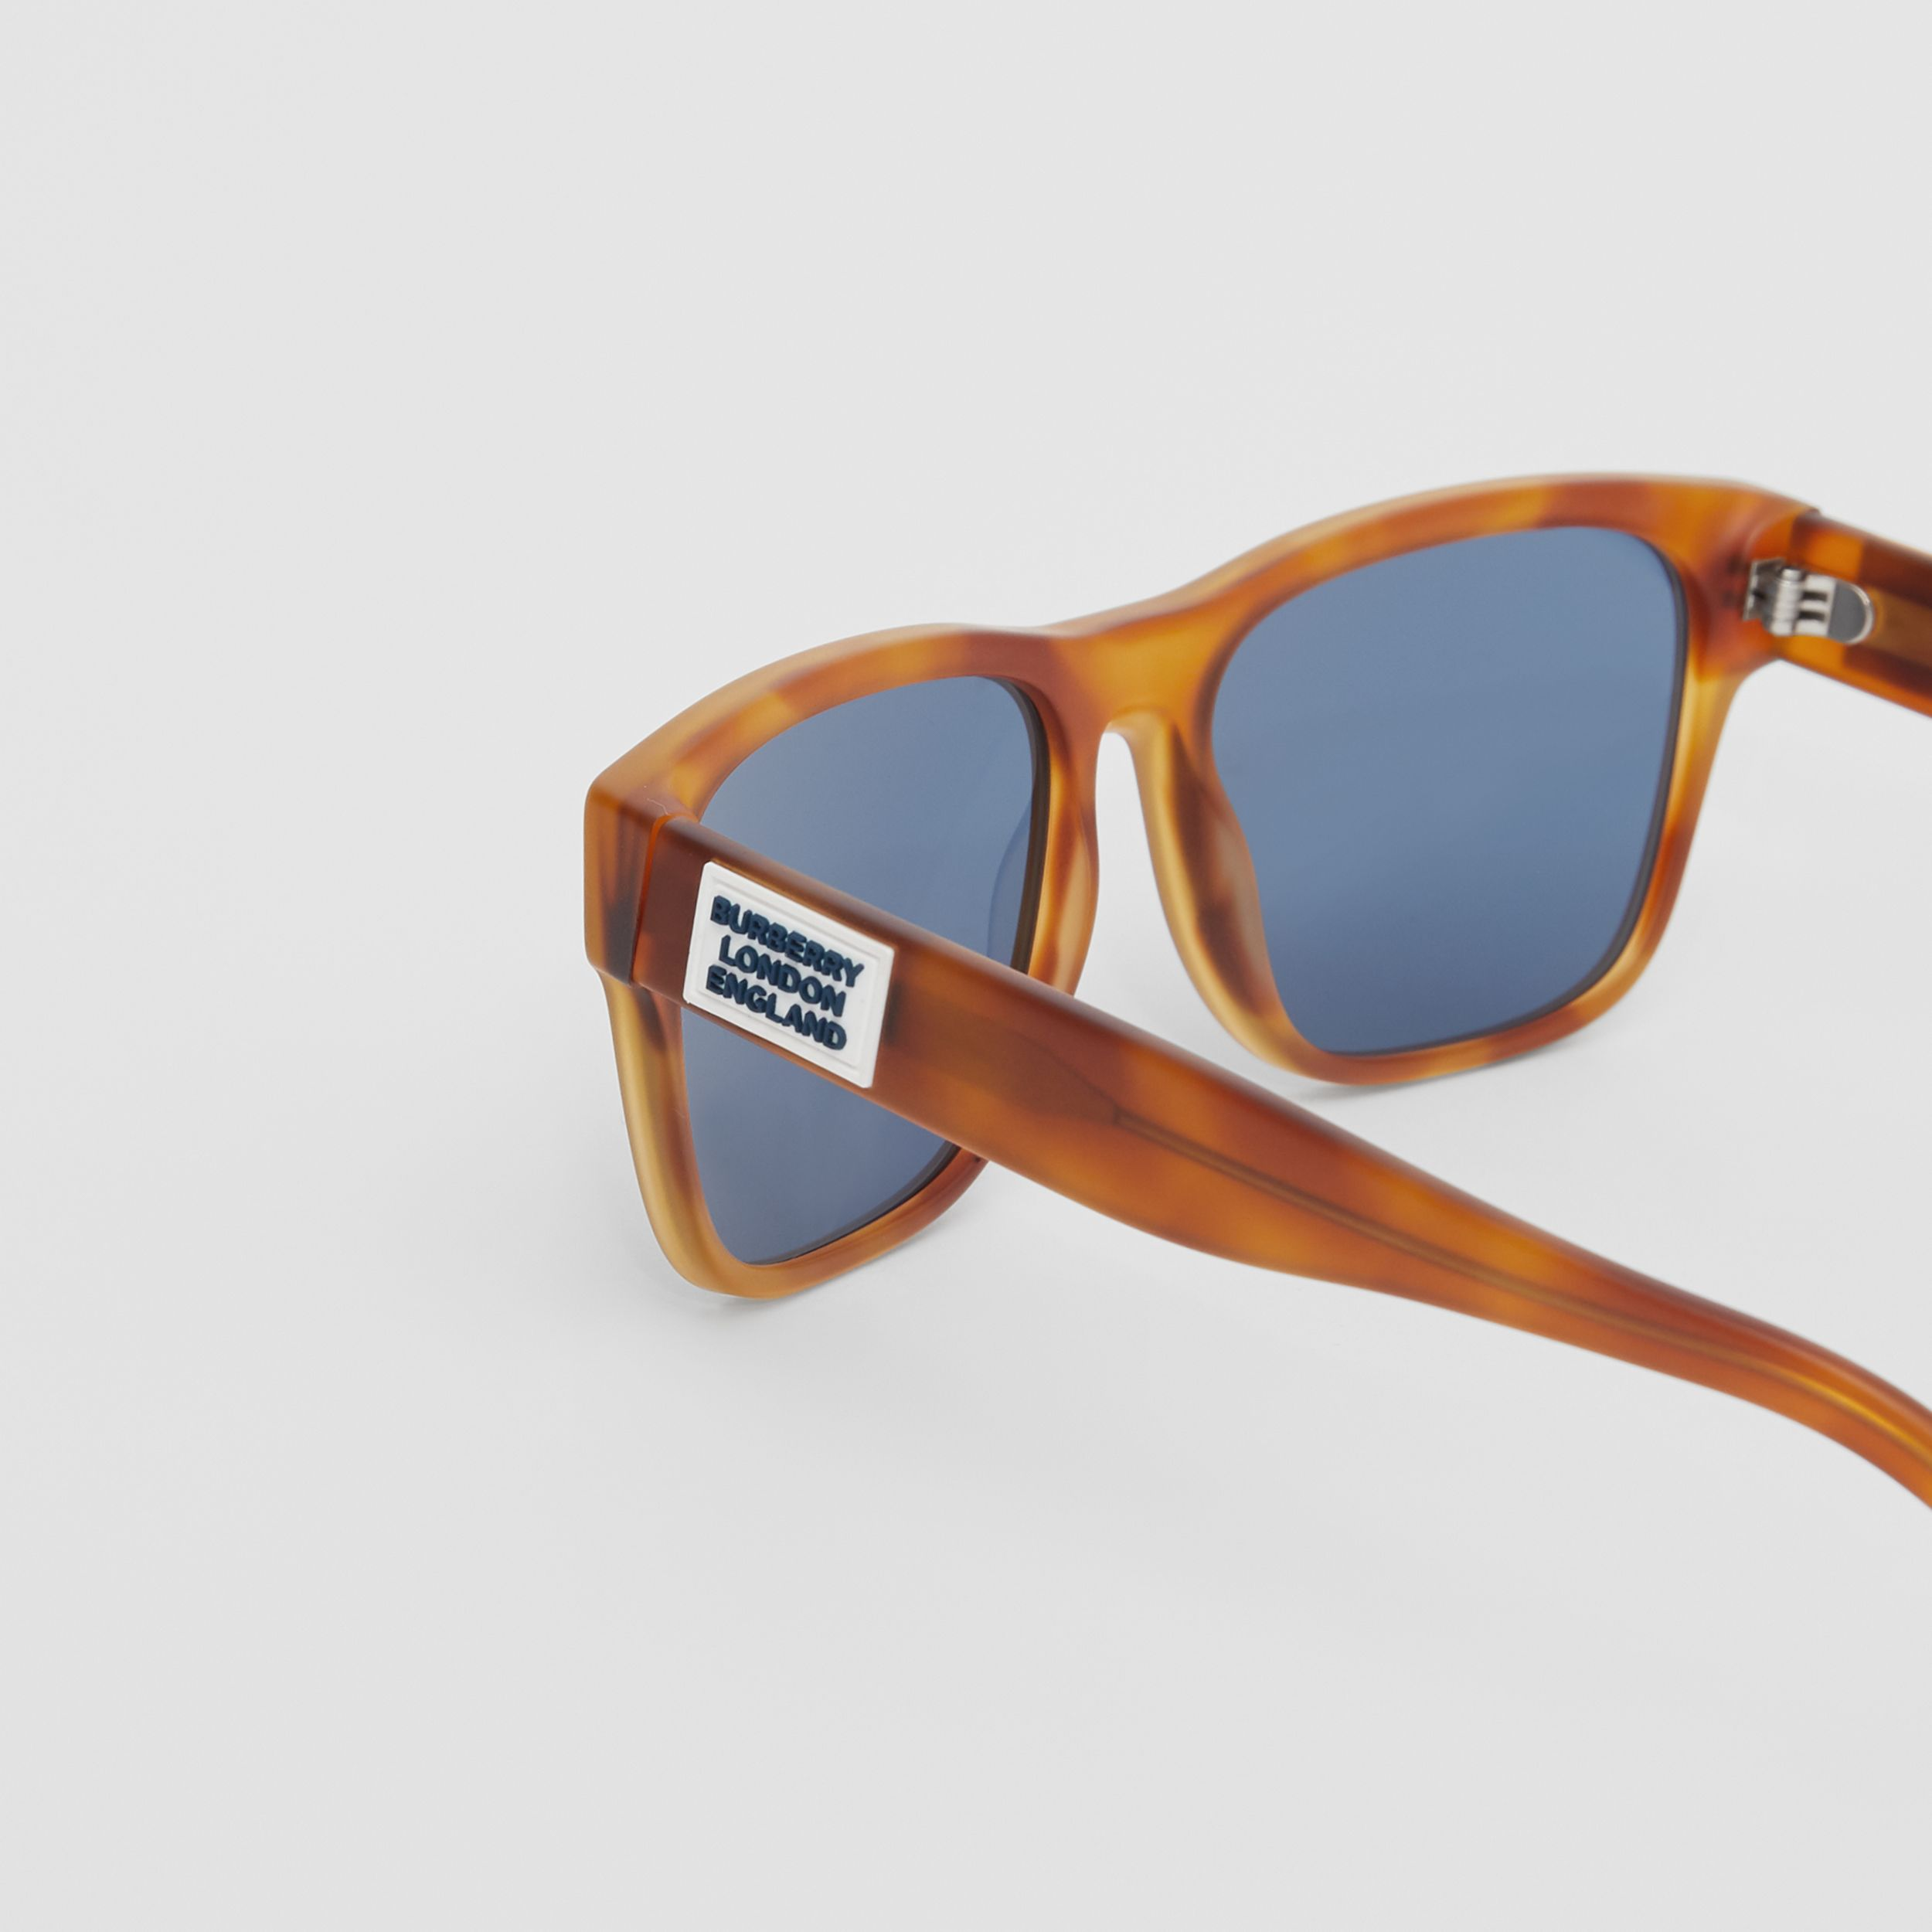 Logo Appliqué Square Frame Sunglasses in Tortoise Amber - Men | Burberry - 2